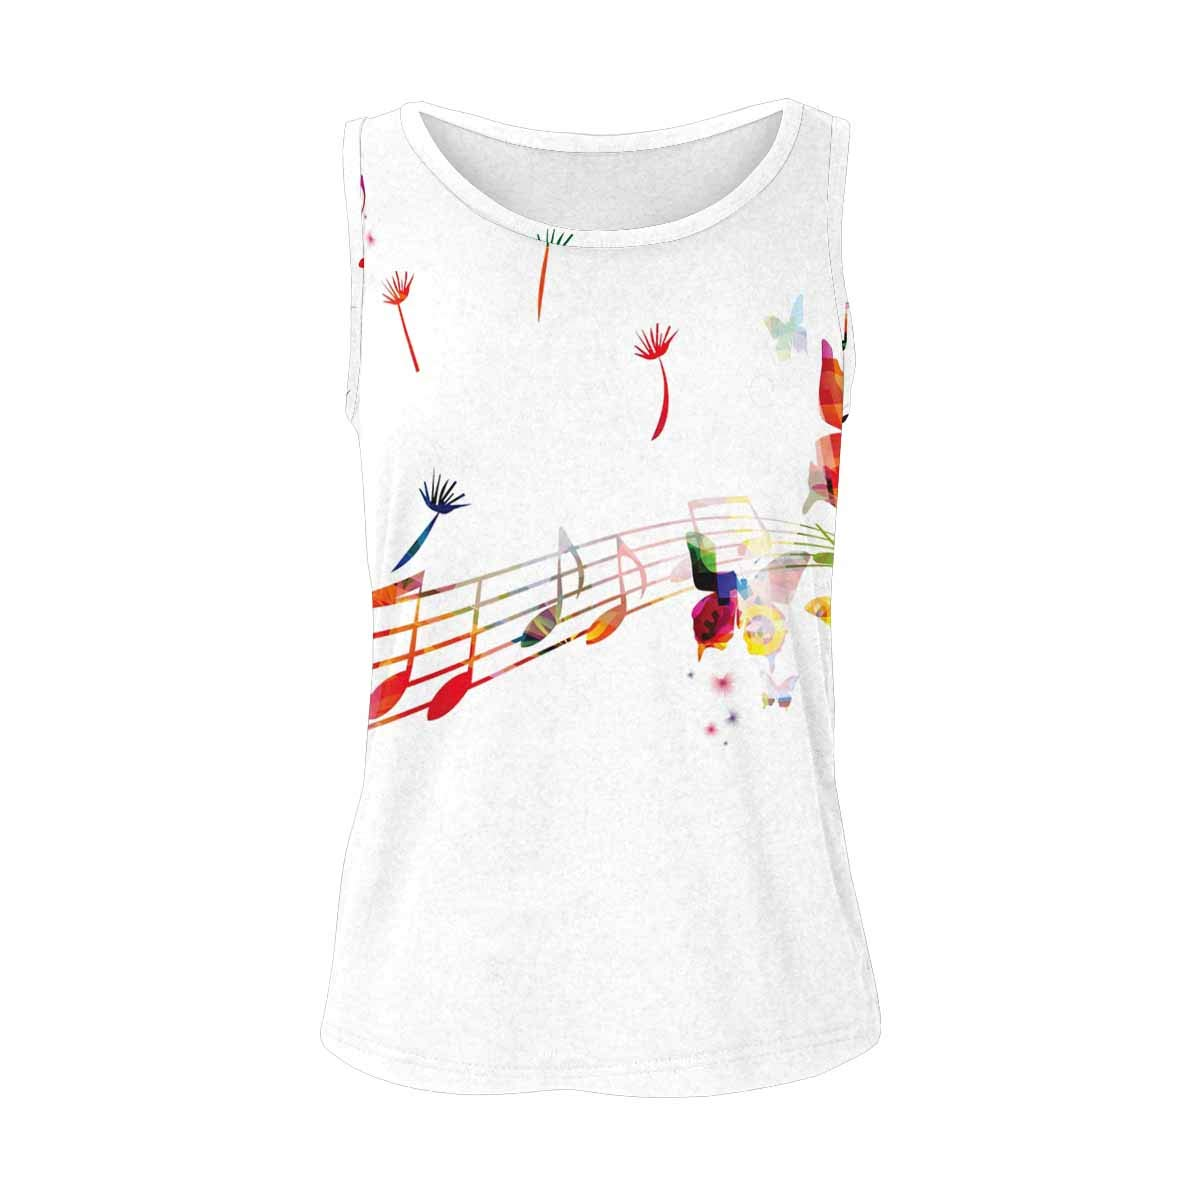 S-2XL INTERESTPRINT Womens Workout Camisoles Stretchy Round Neck Tank Tops